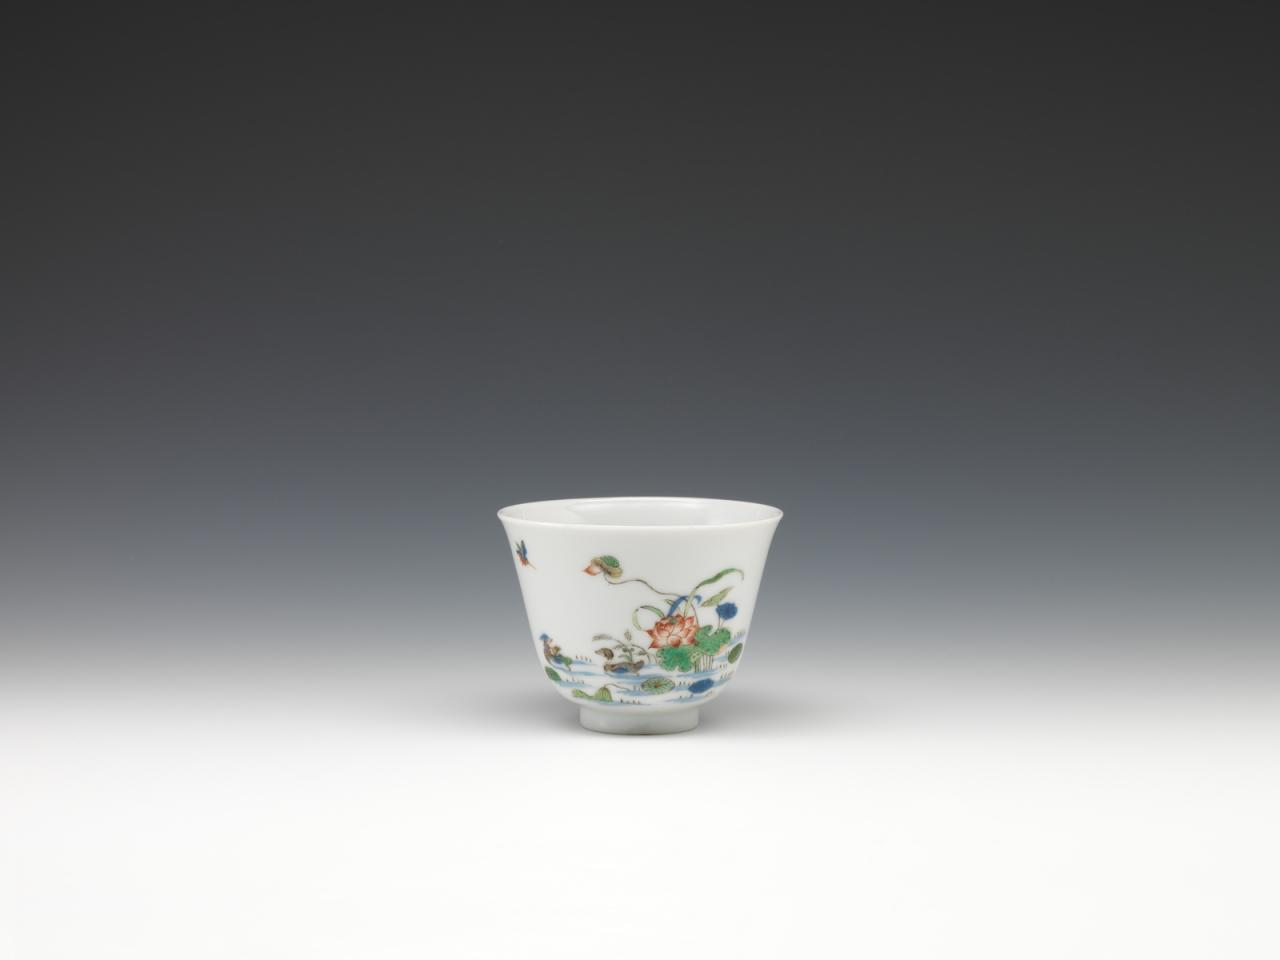 Twelve cups with flowers representing the twelve months in wucai enamels-June image